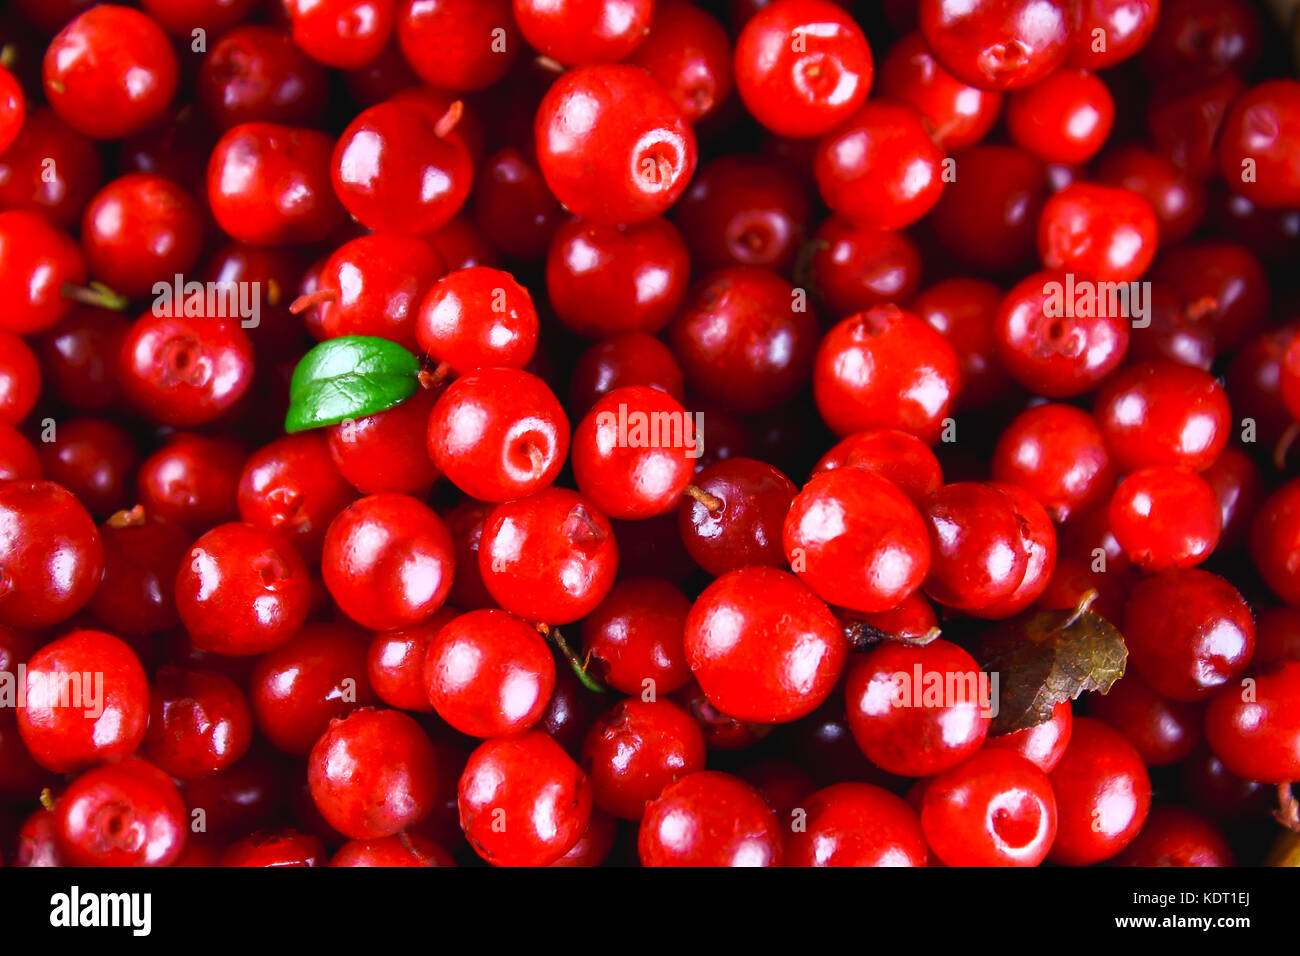 Cowberry, foxberry, cranberry, lingonberry texture, top view. - Stock Image